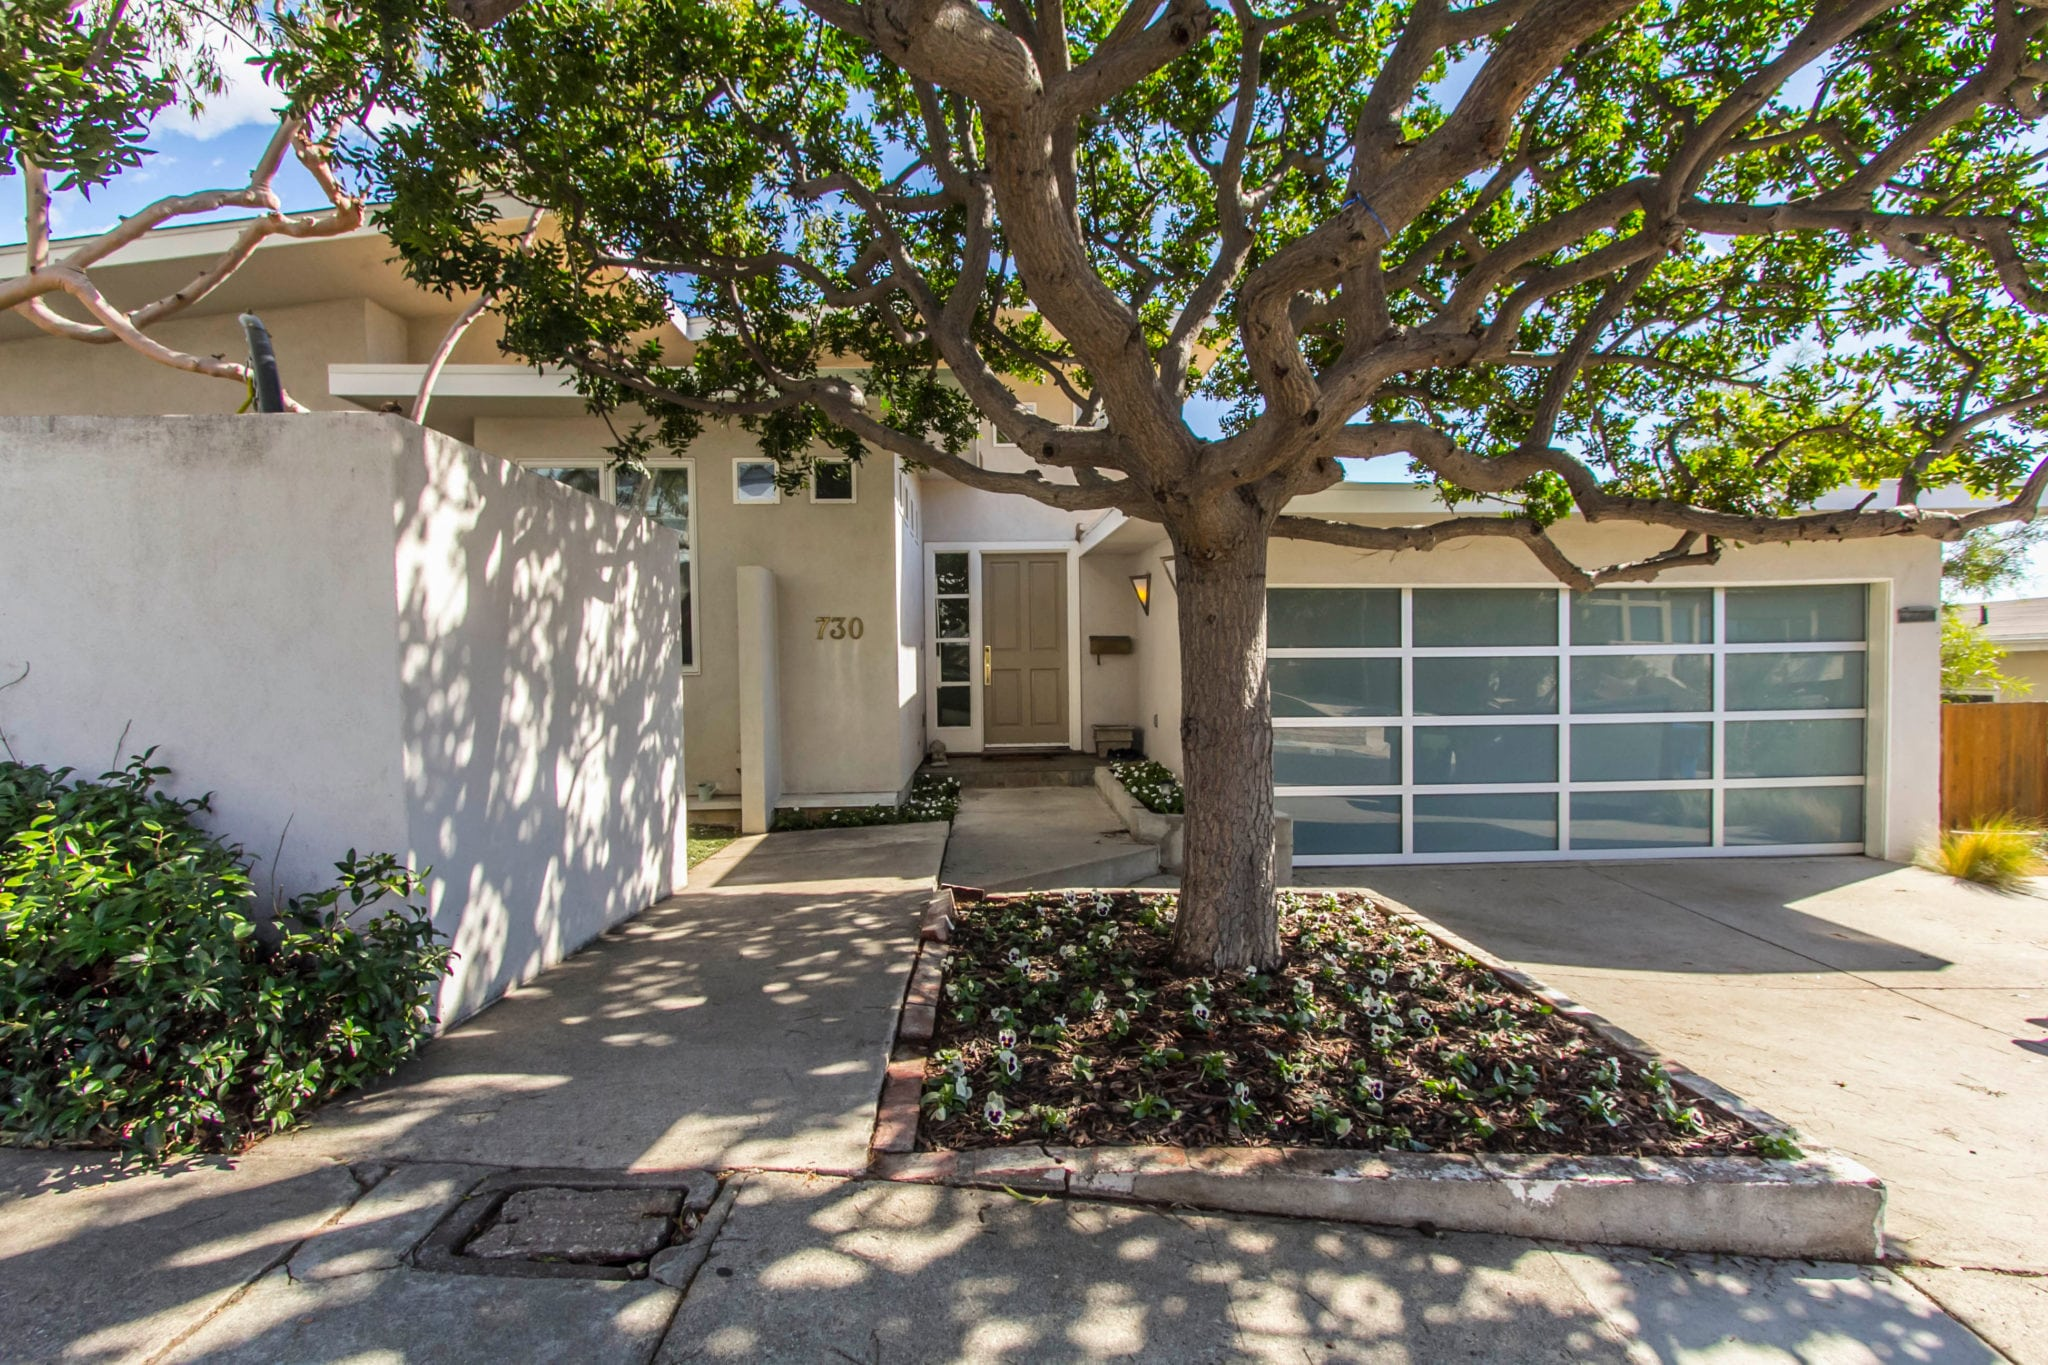 SOLD - 730 Lachman Lane, Pacific Palisades